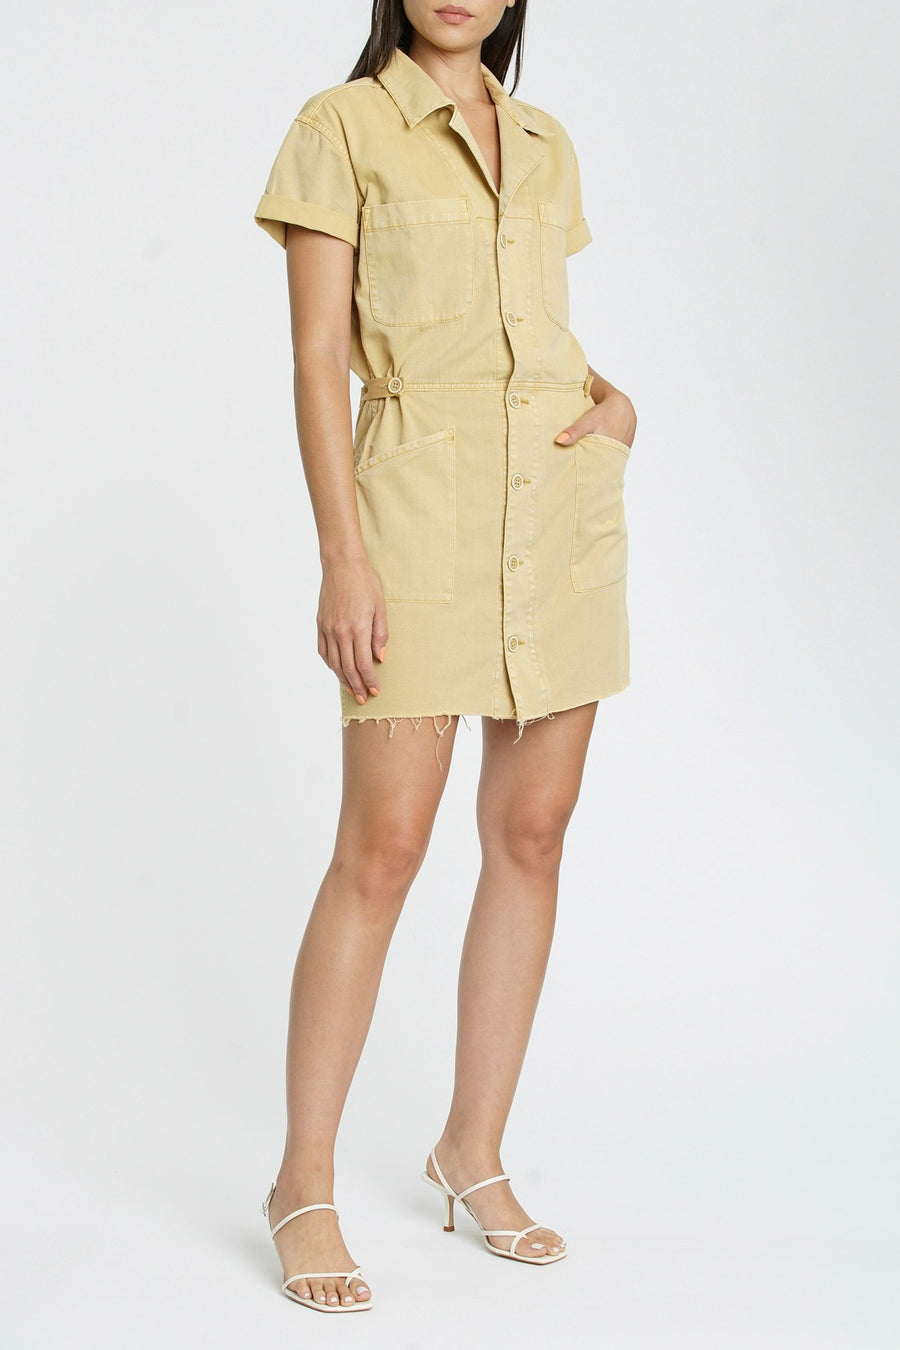 Pistola Clara Field Dress in Glazed Yellow